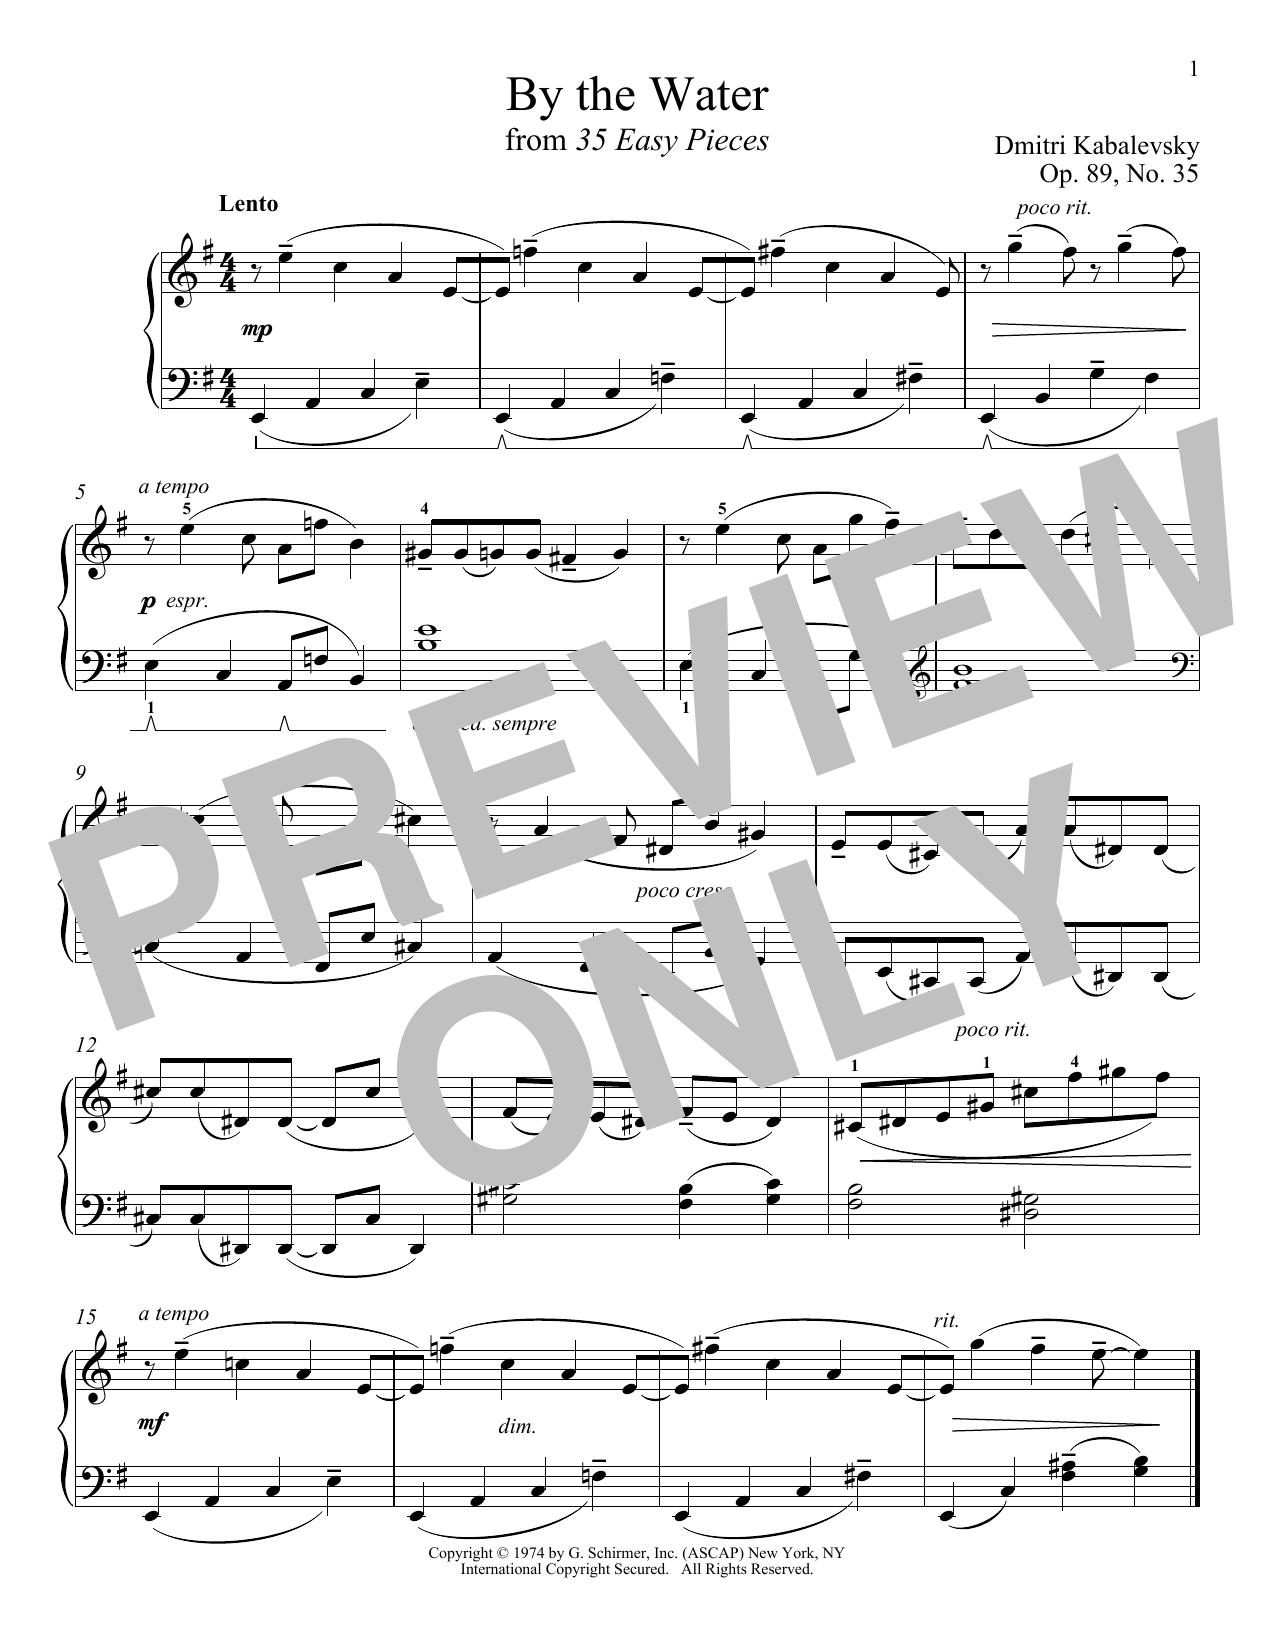 Dmitri Kabalevsky By The Water, Op. 89, No. 35 sheet music notes and chords